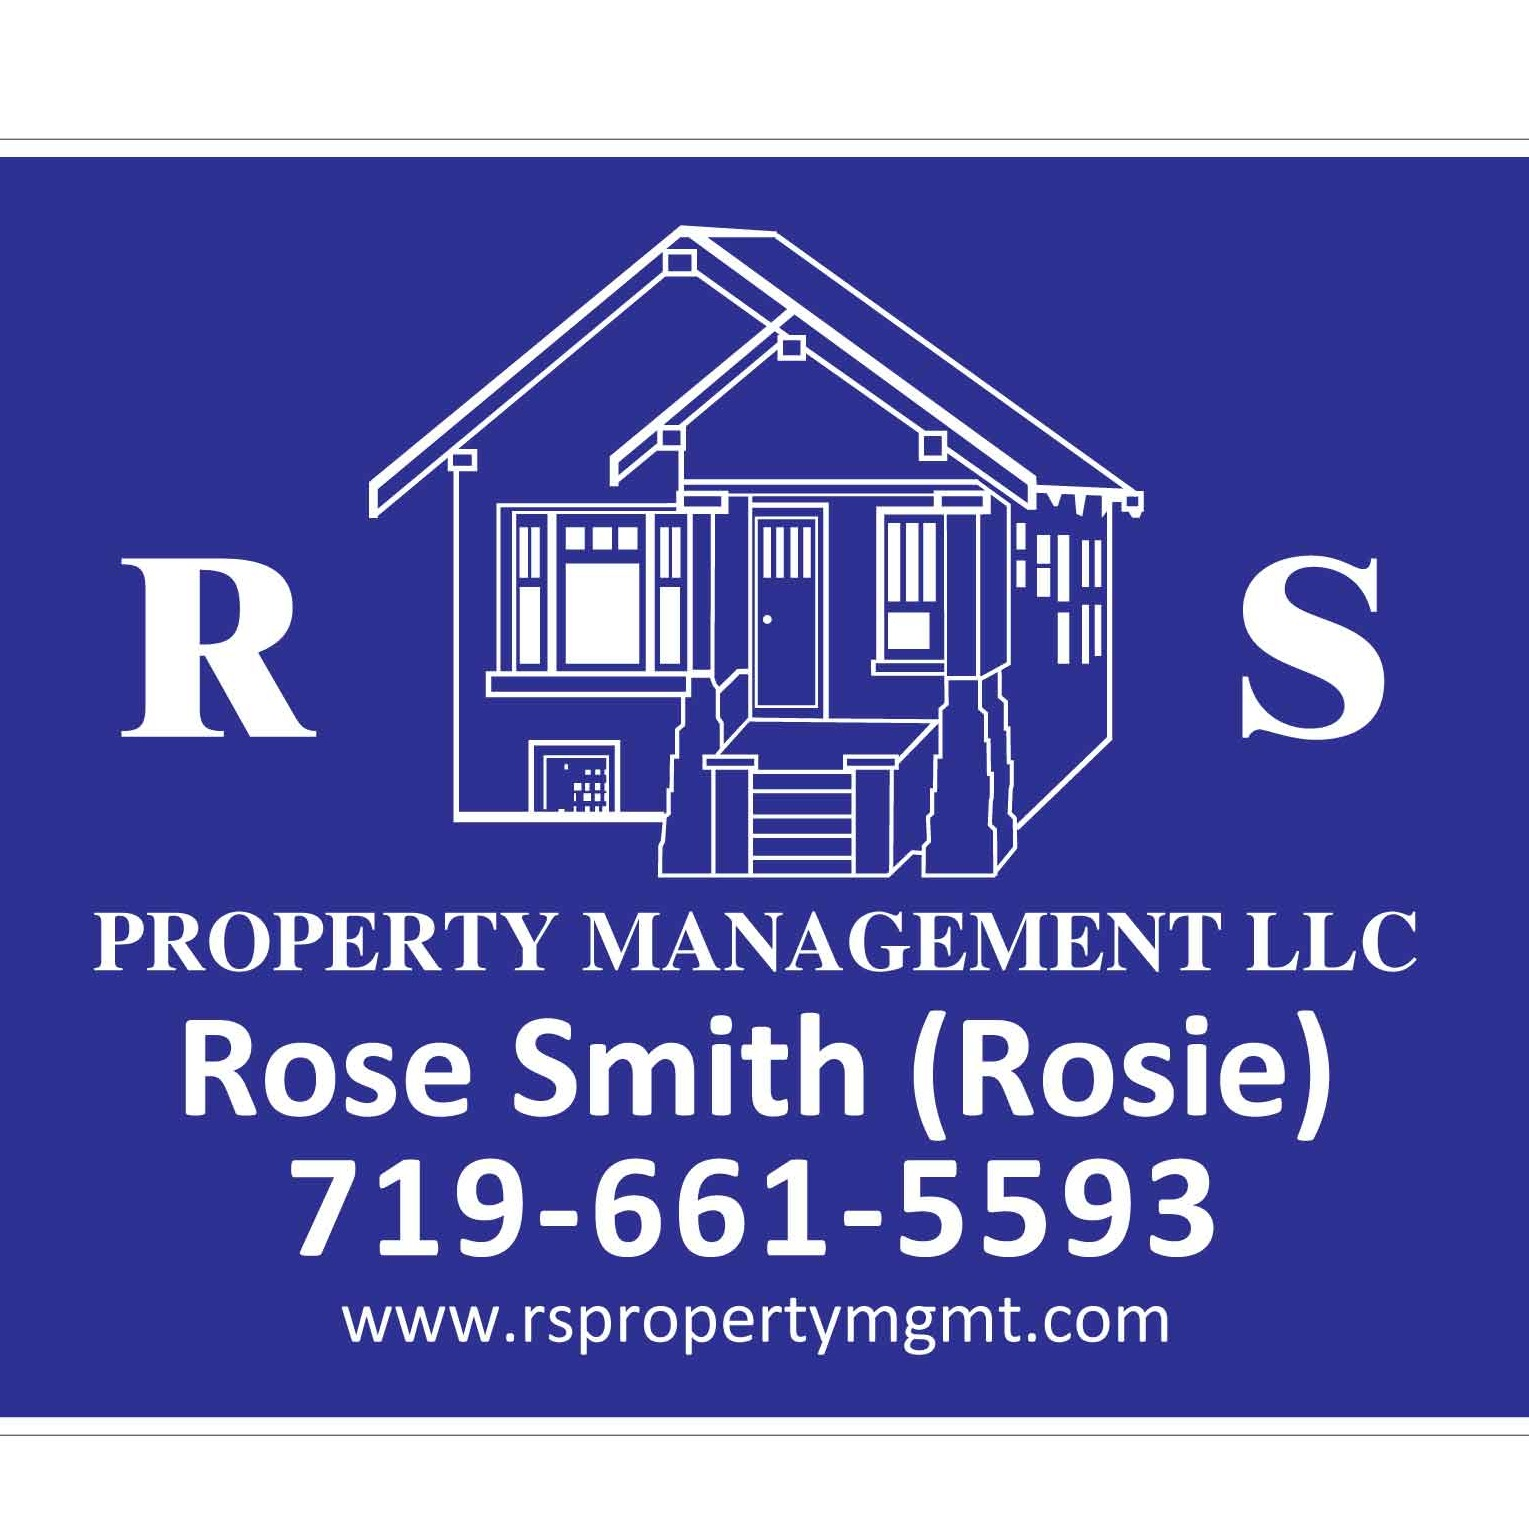 RS Property Management